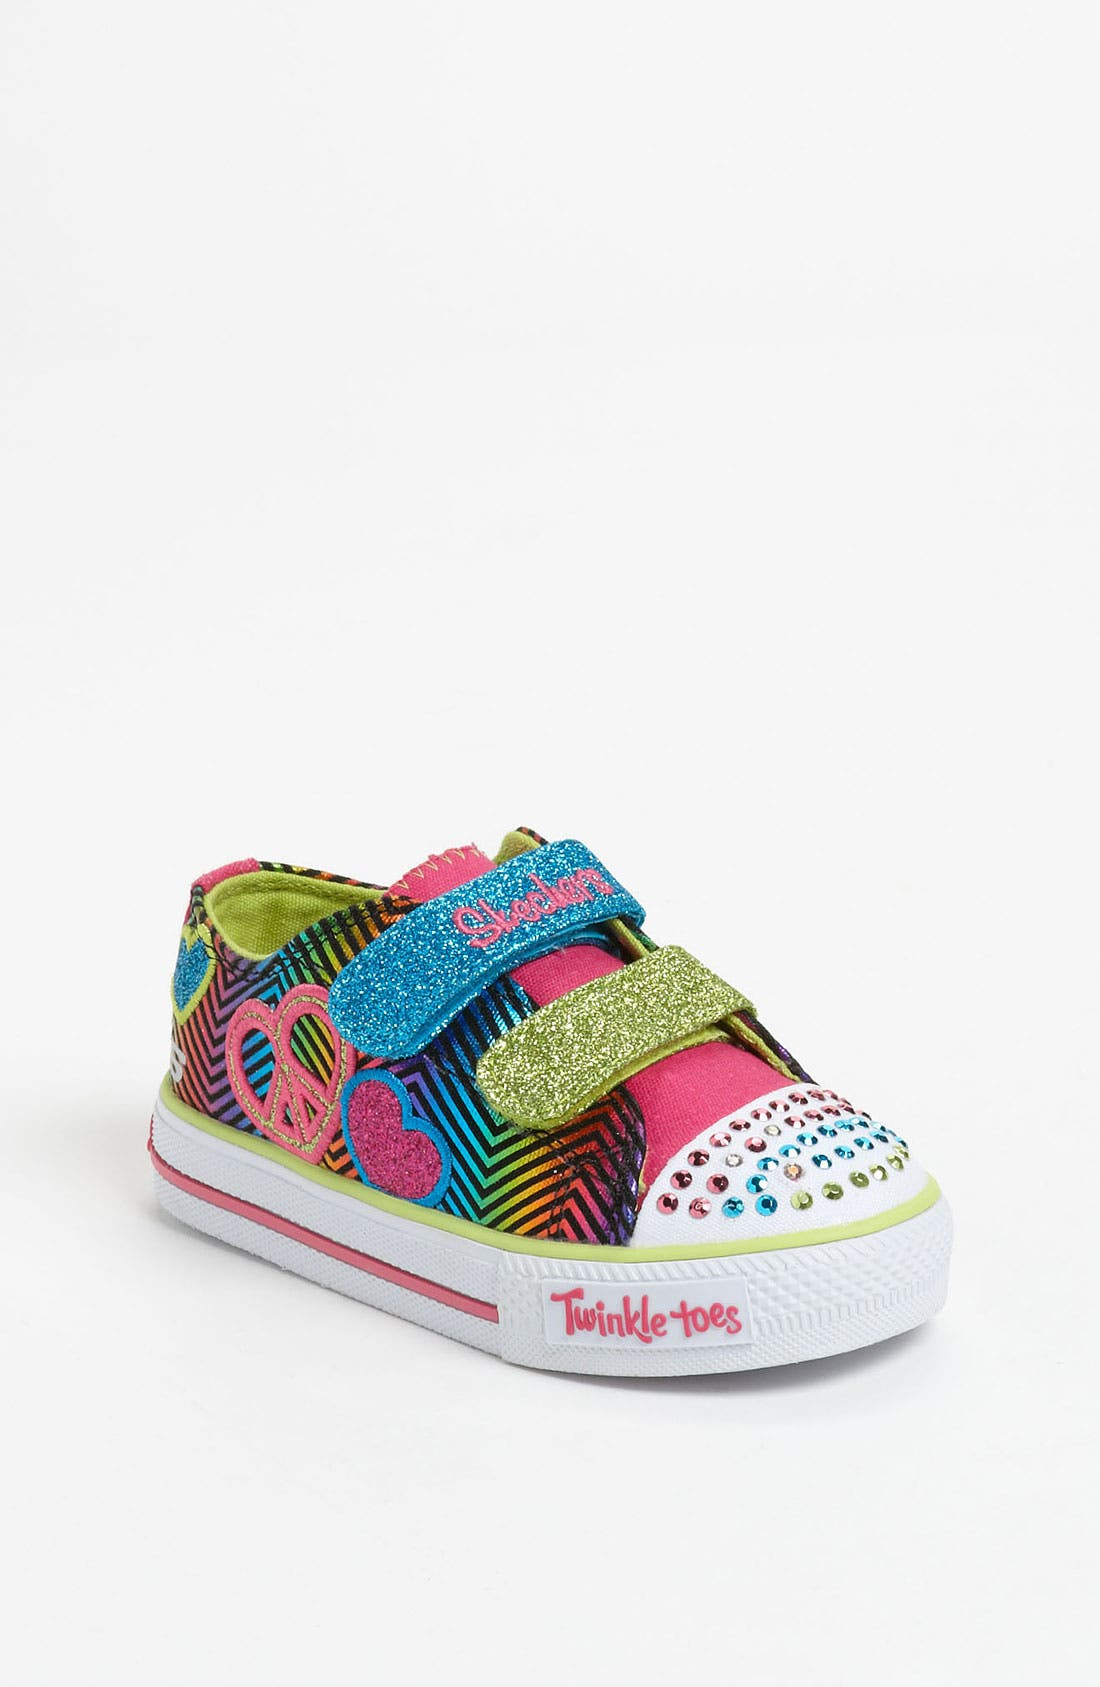 Main Image - SKECHERS 'Shuffles - Baby Luv' Light Up Sneaker (Walker & Toddler)